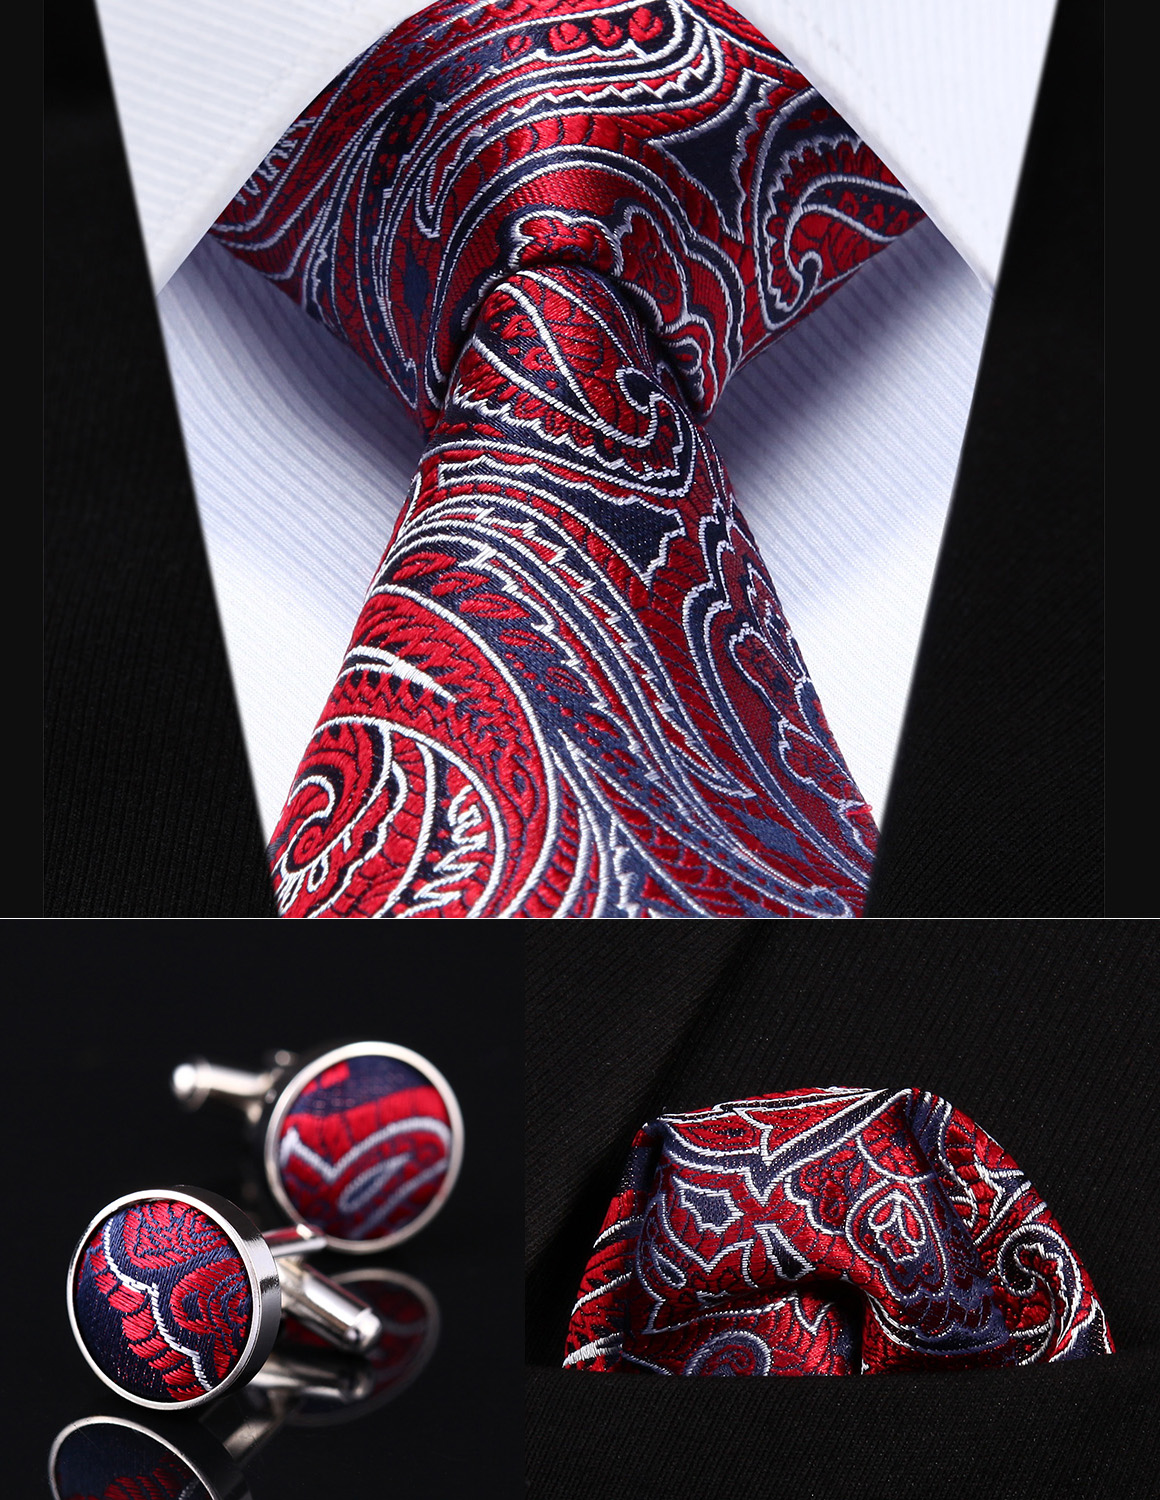 "Party Wedding Classic Pocket Square Tie TZP13R8 Red Blue Paisley 3.4"" Silk Men Tie Necktie Handkerchief Cufflinks Set"